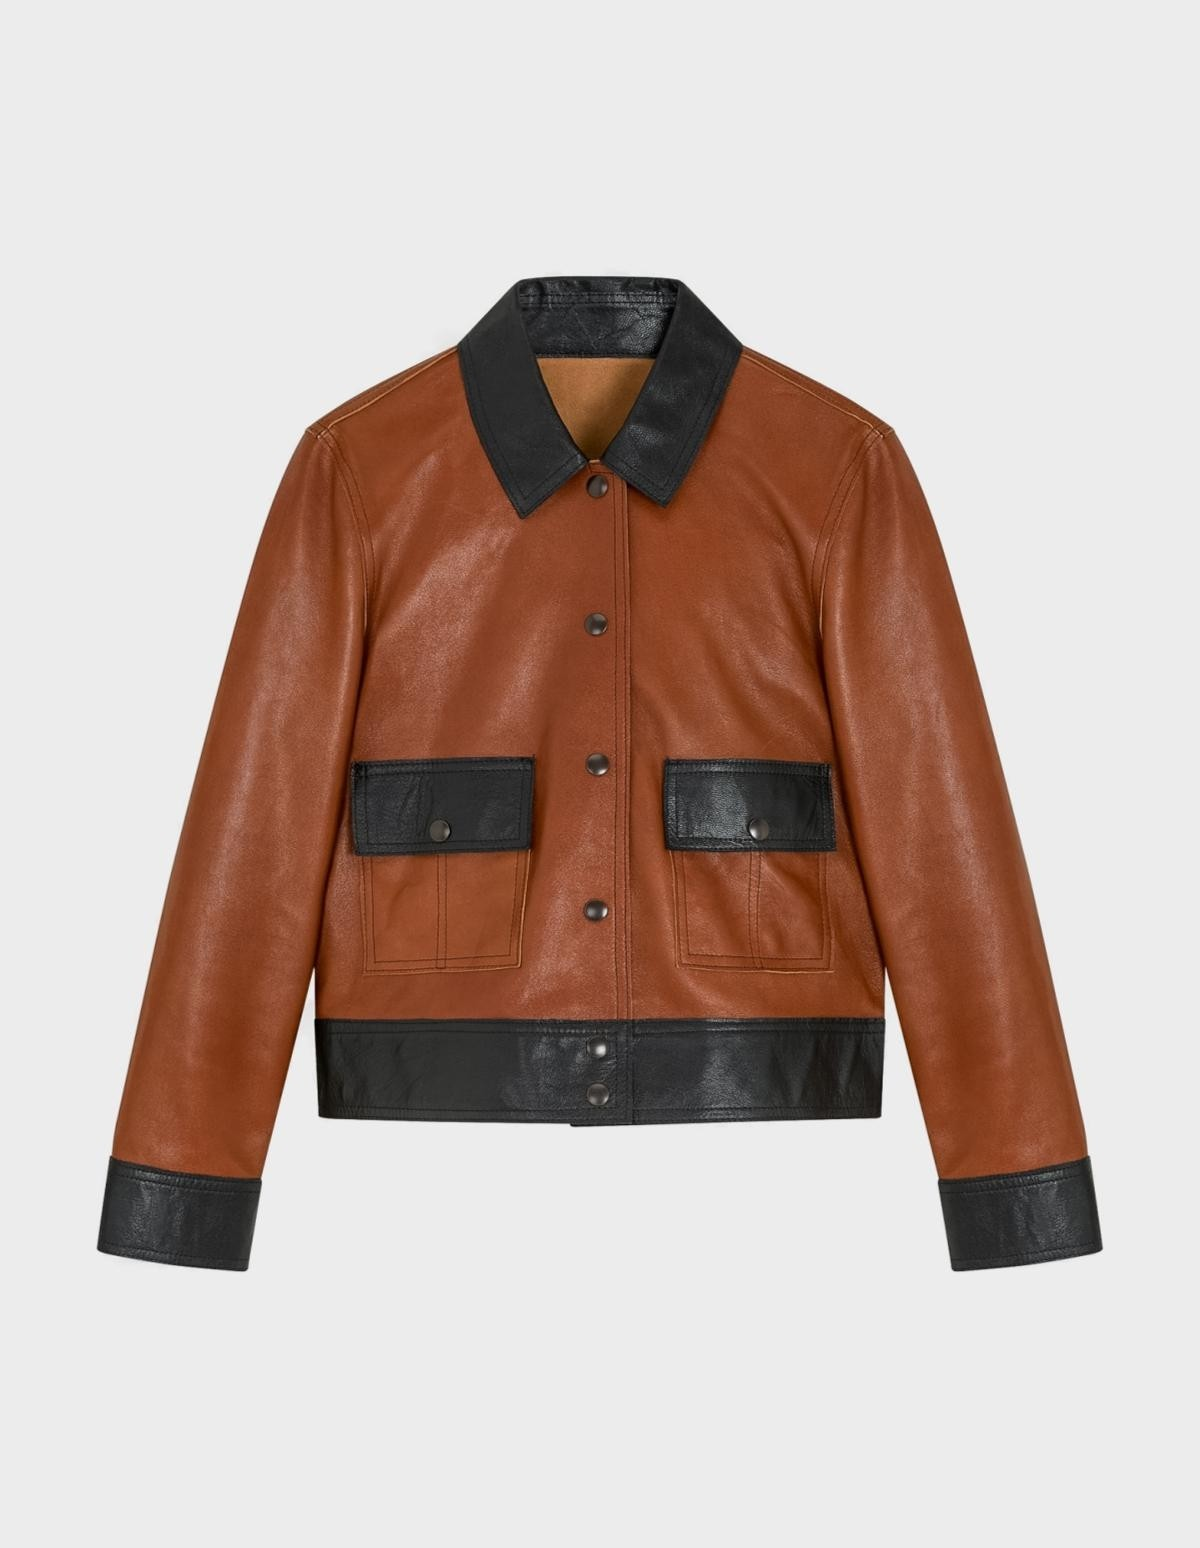 YMC You Must Create Chrissy Jacket in Tan Black